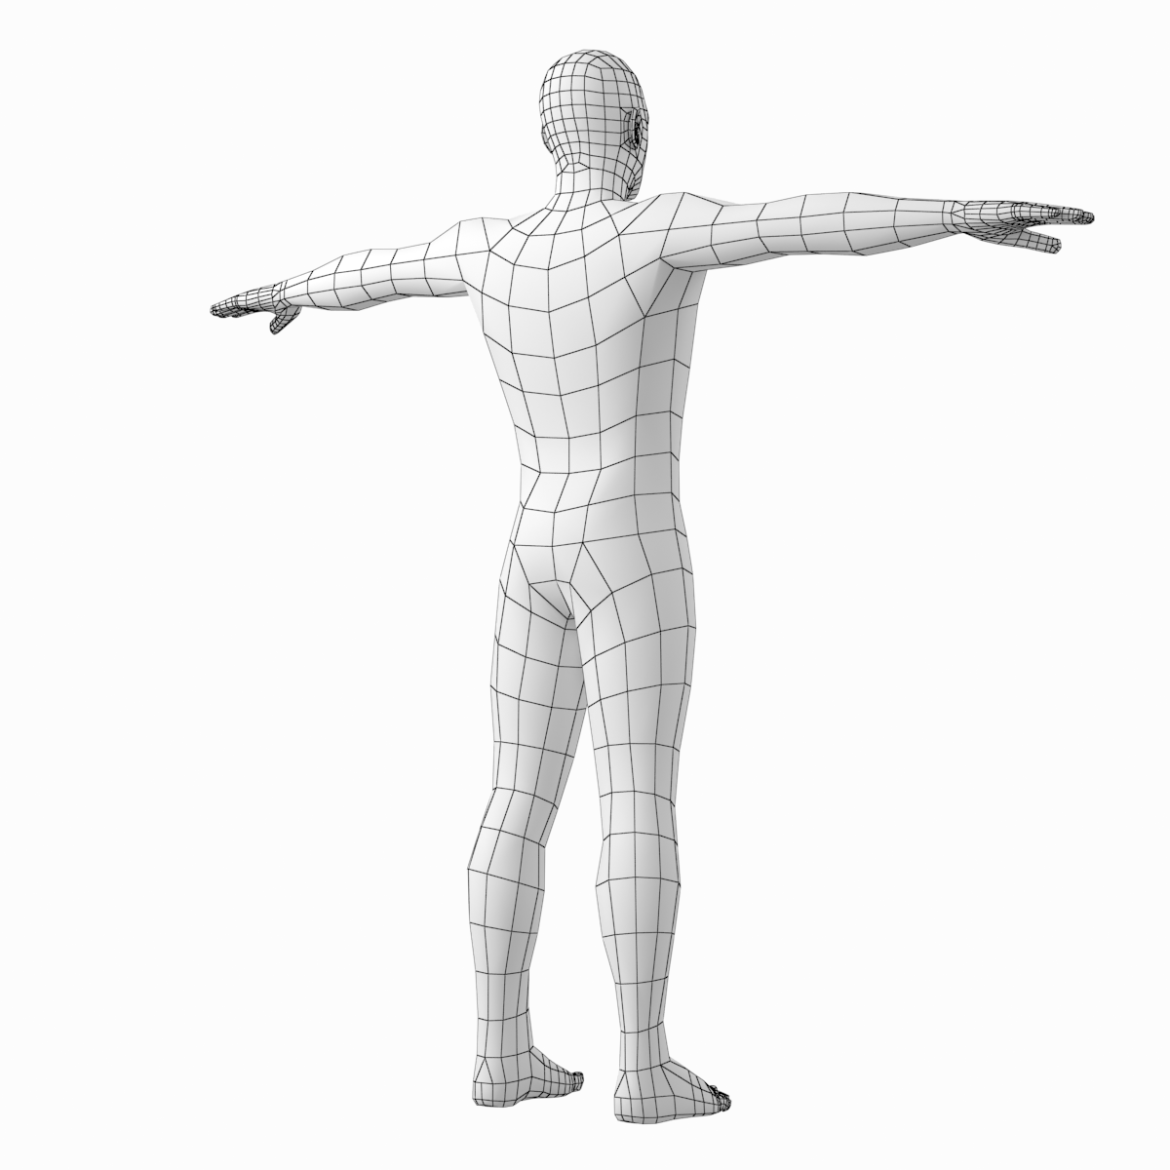 male and female base mesh in t-pose 3d model png stl obj ma mb max fbx dxf dwg dae c4d 3ds txt 305180